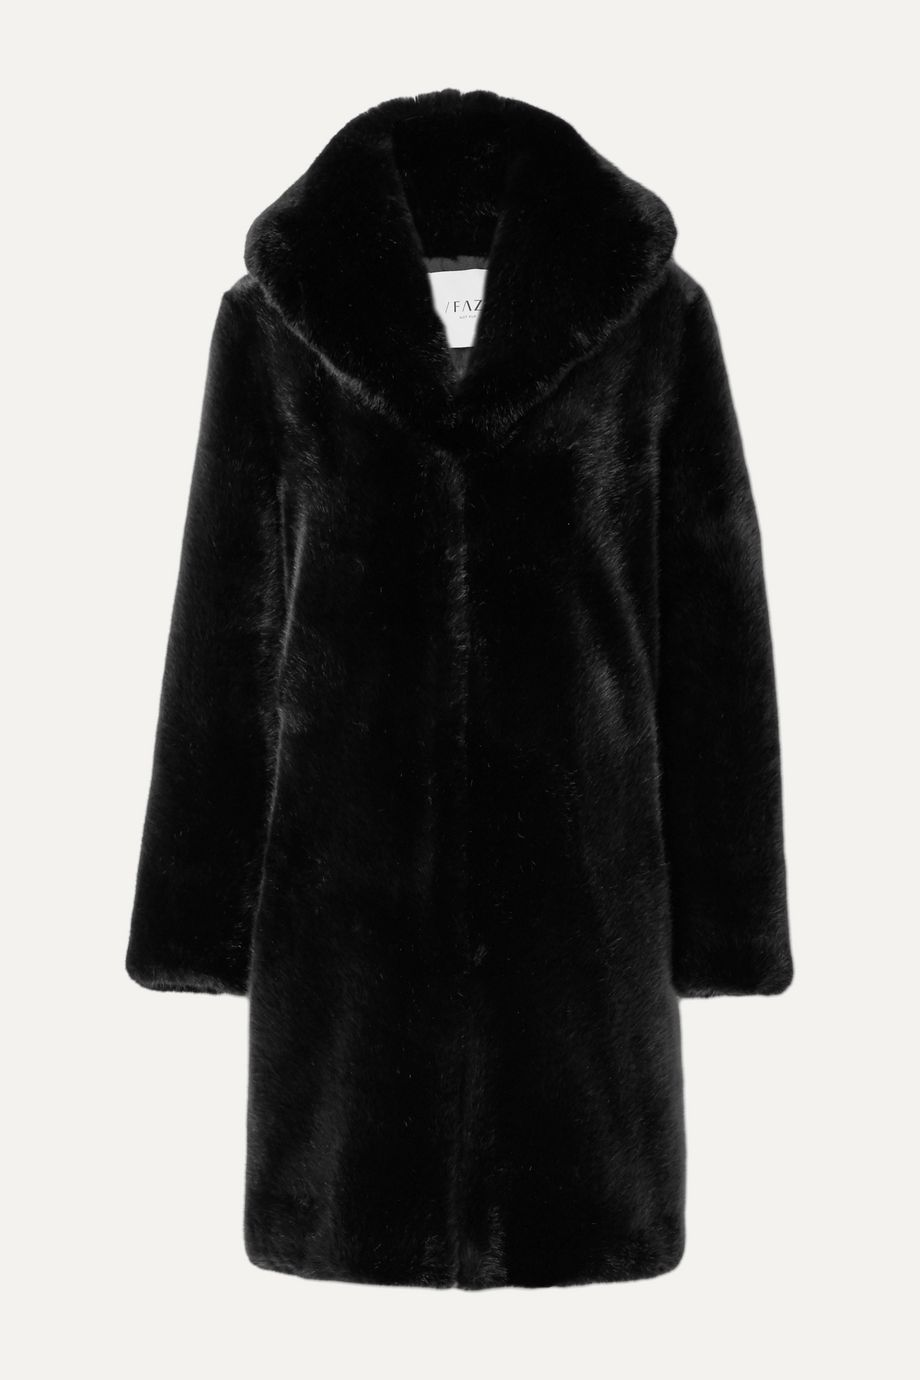 Faz Not Fur Dark Knight faux fur coat